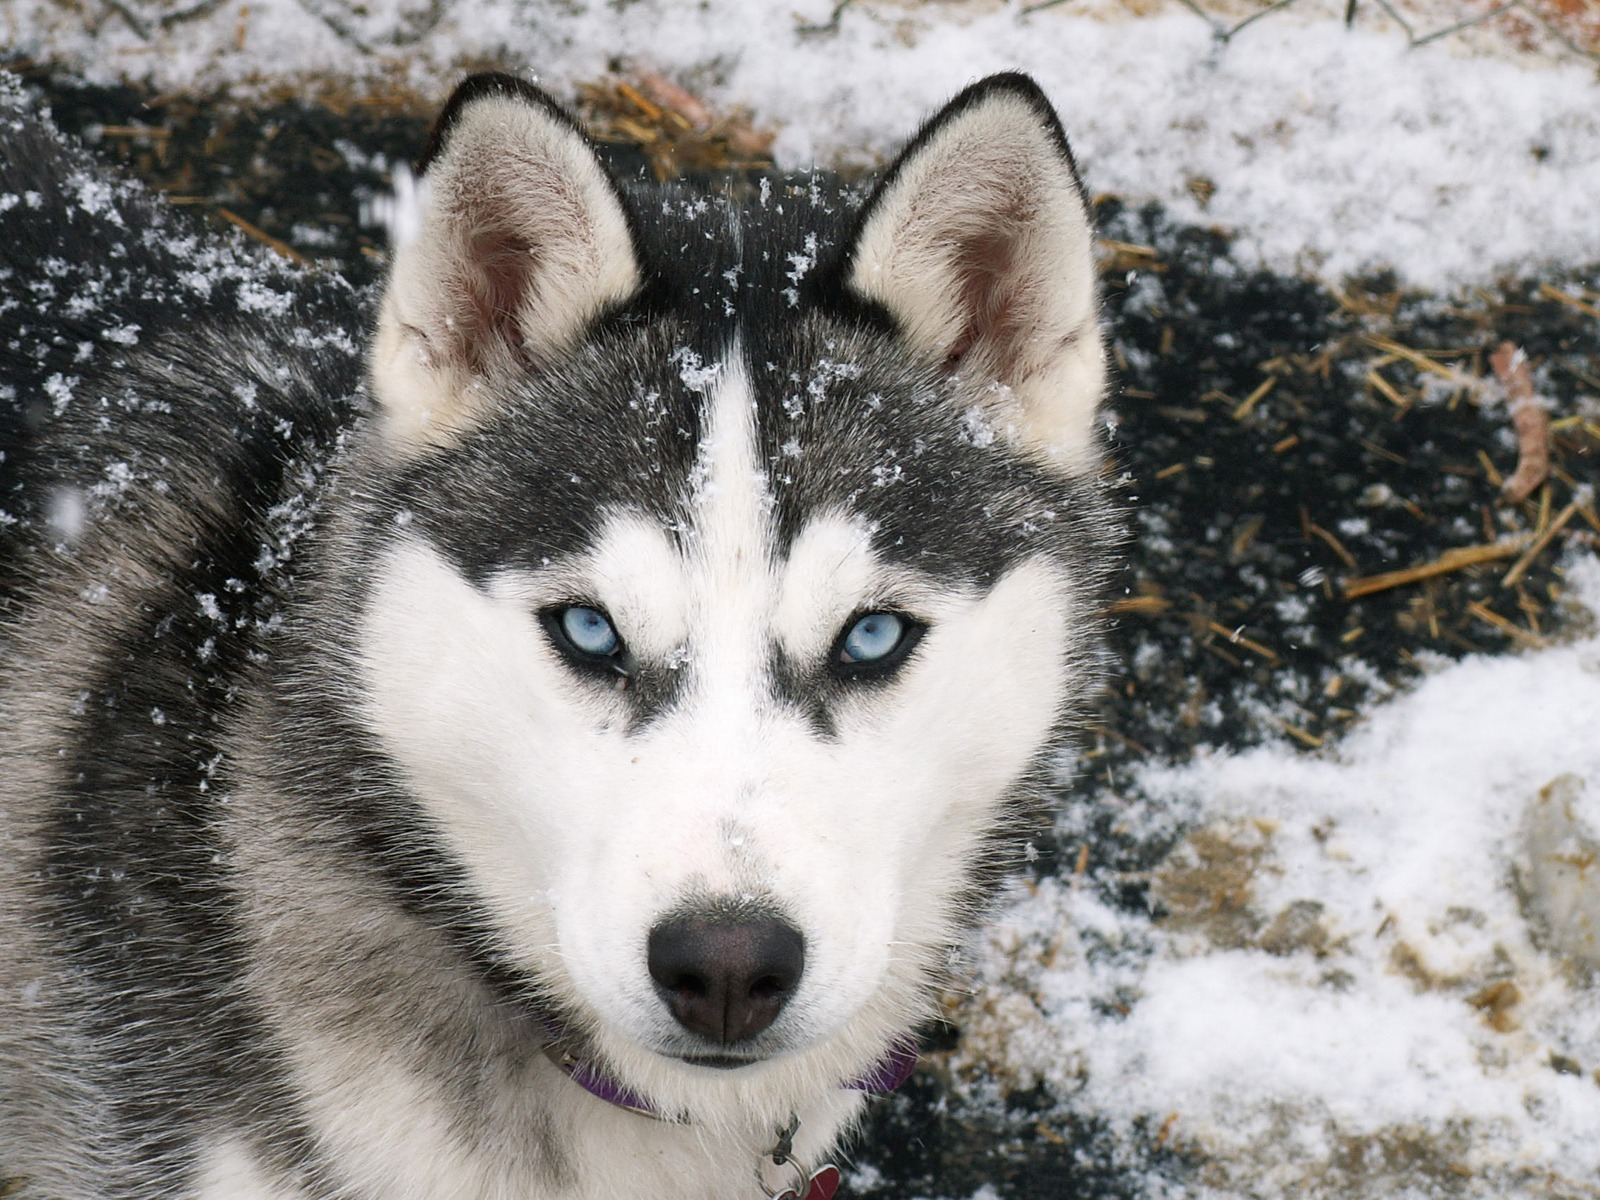 Add photos siberian husky dog in your blog